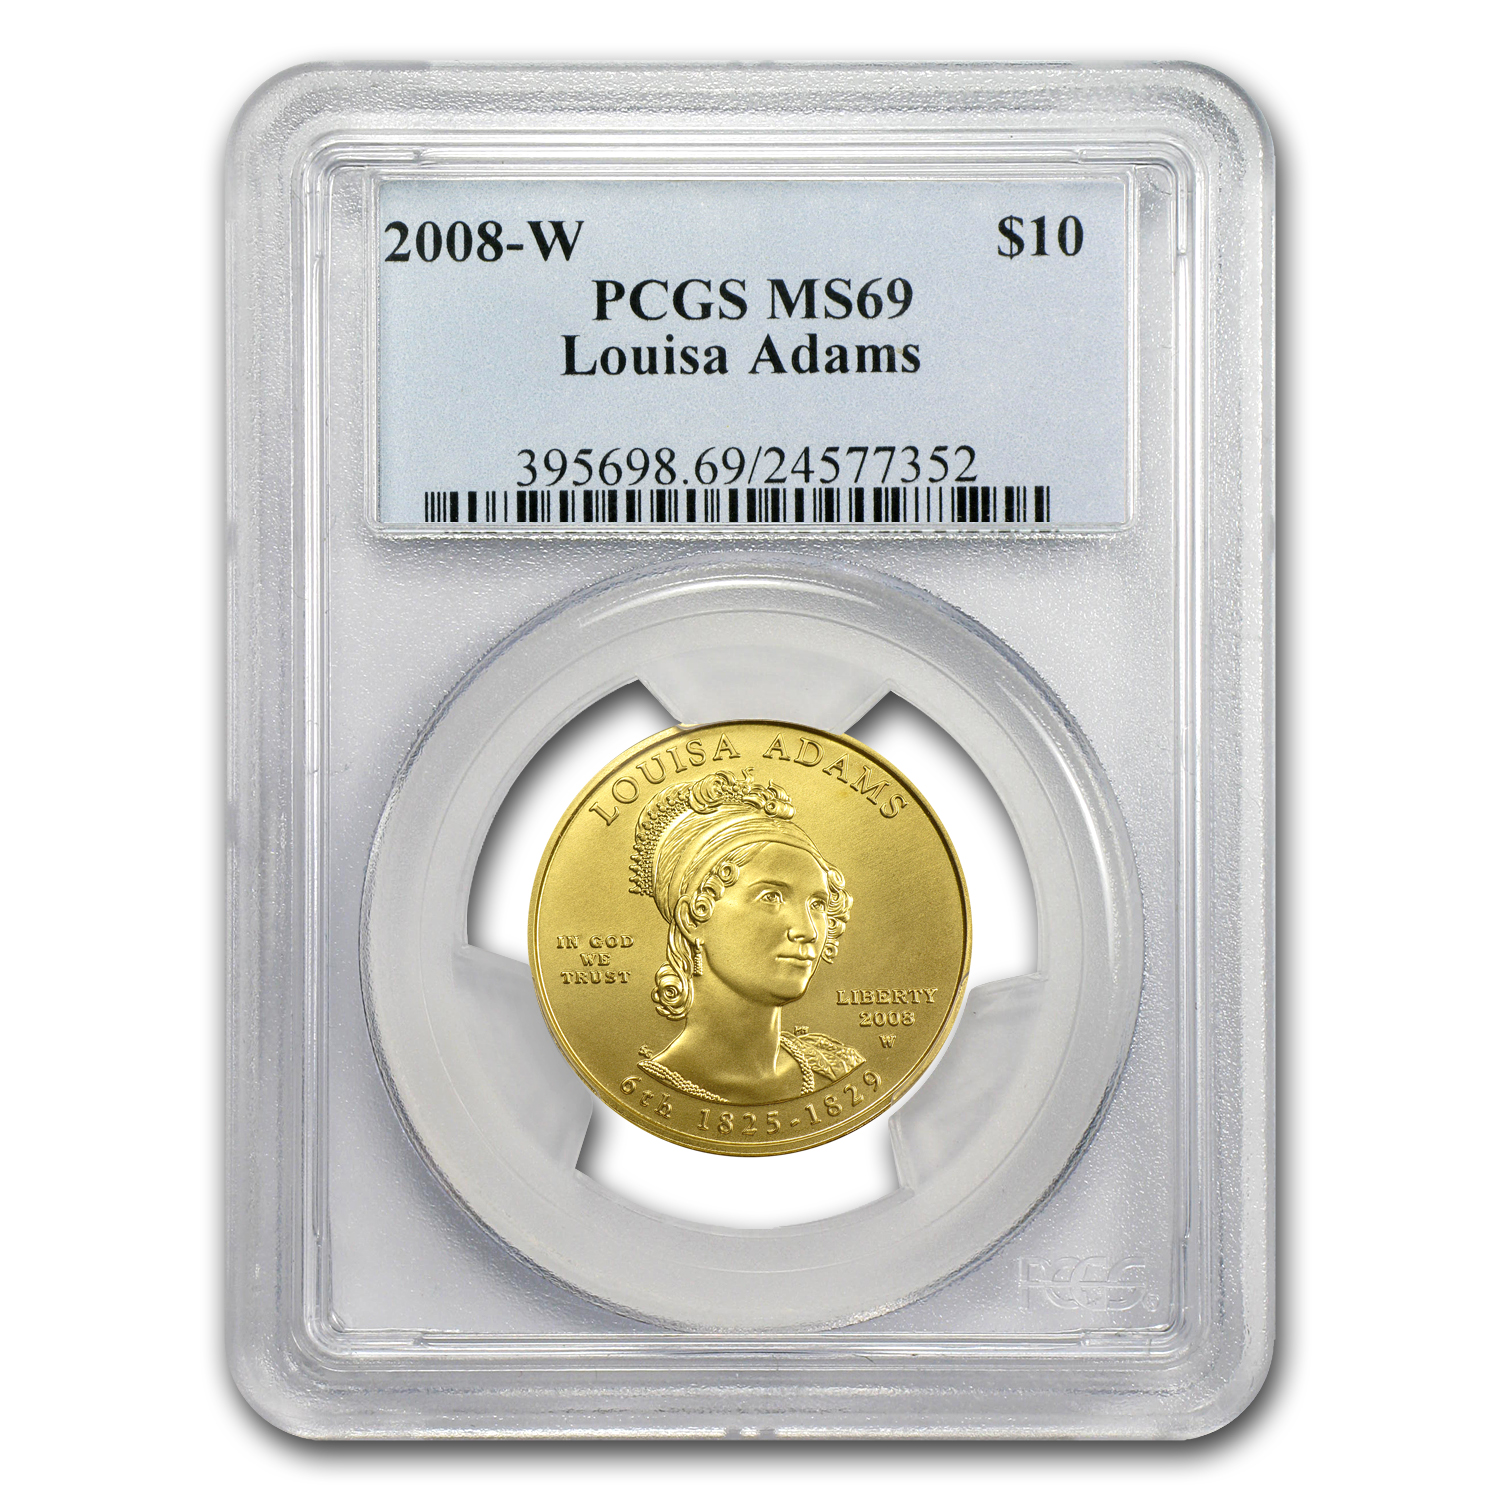 2008-W 1/2 oz Gold Louisa Adams MS-69 PCGS